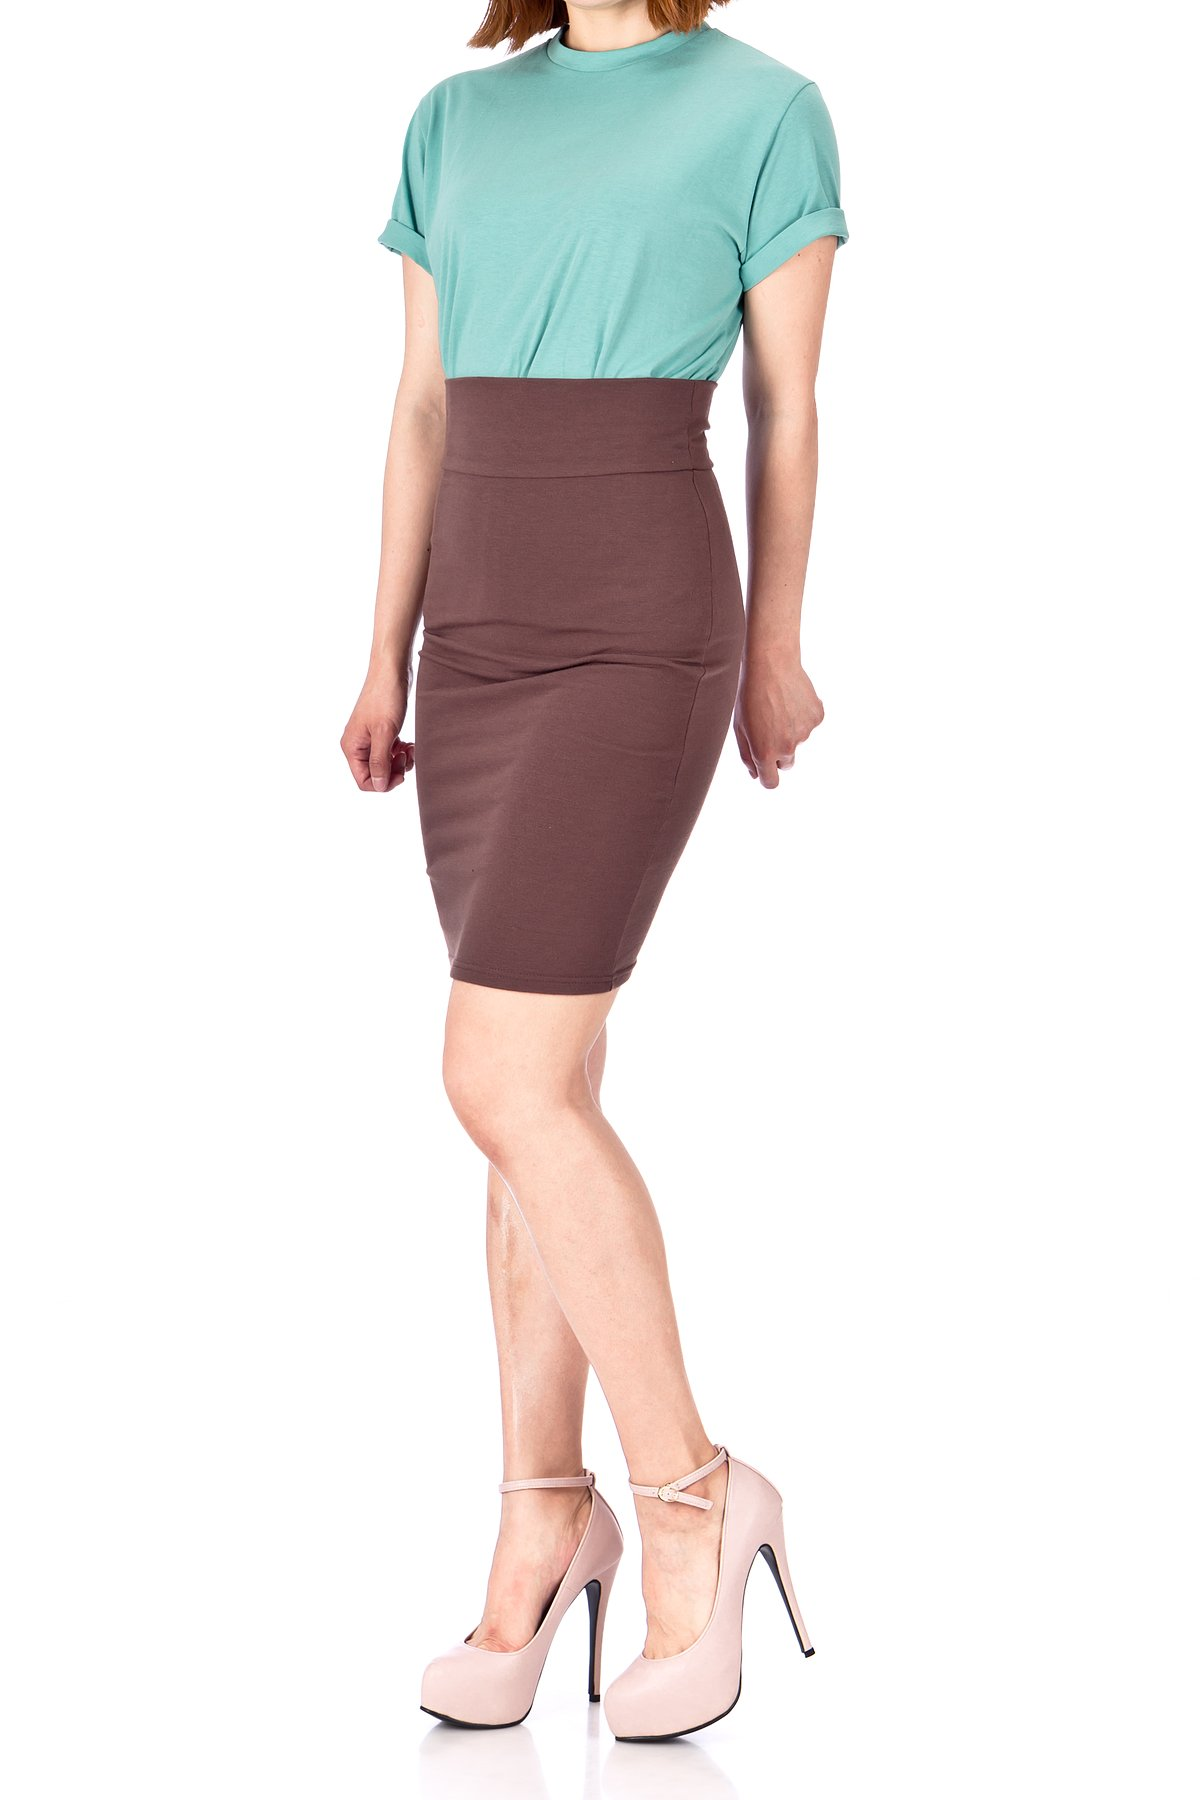 Every Occasion Stretch Pull on Wide High Waist Bodycon Pencil Knee Length Midi Skirt Brown 01